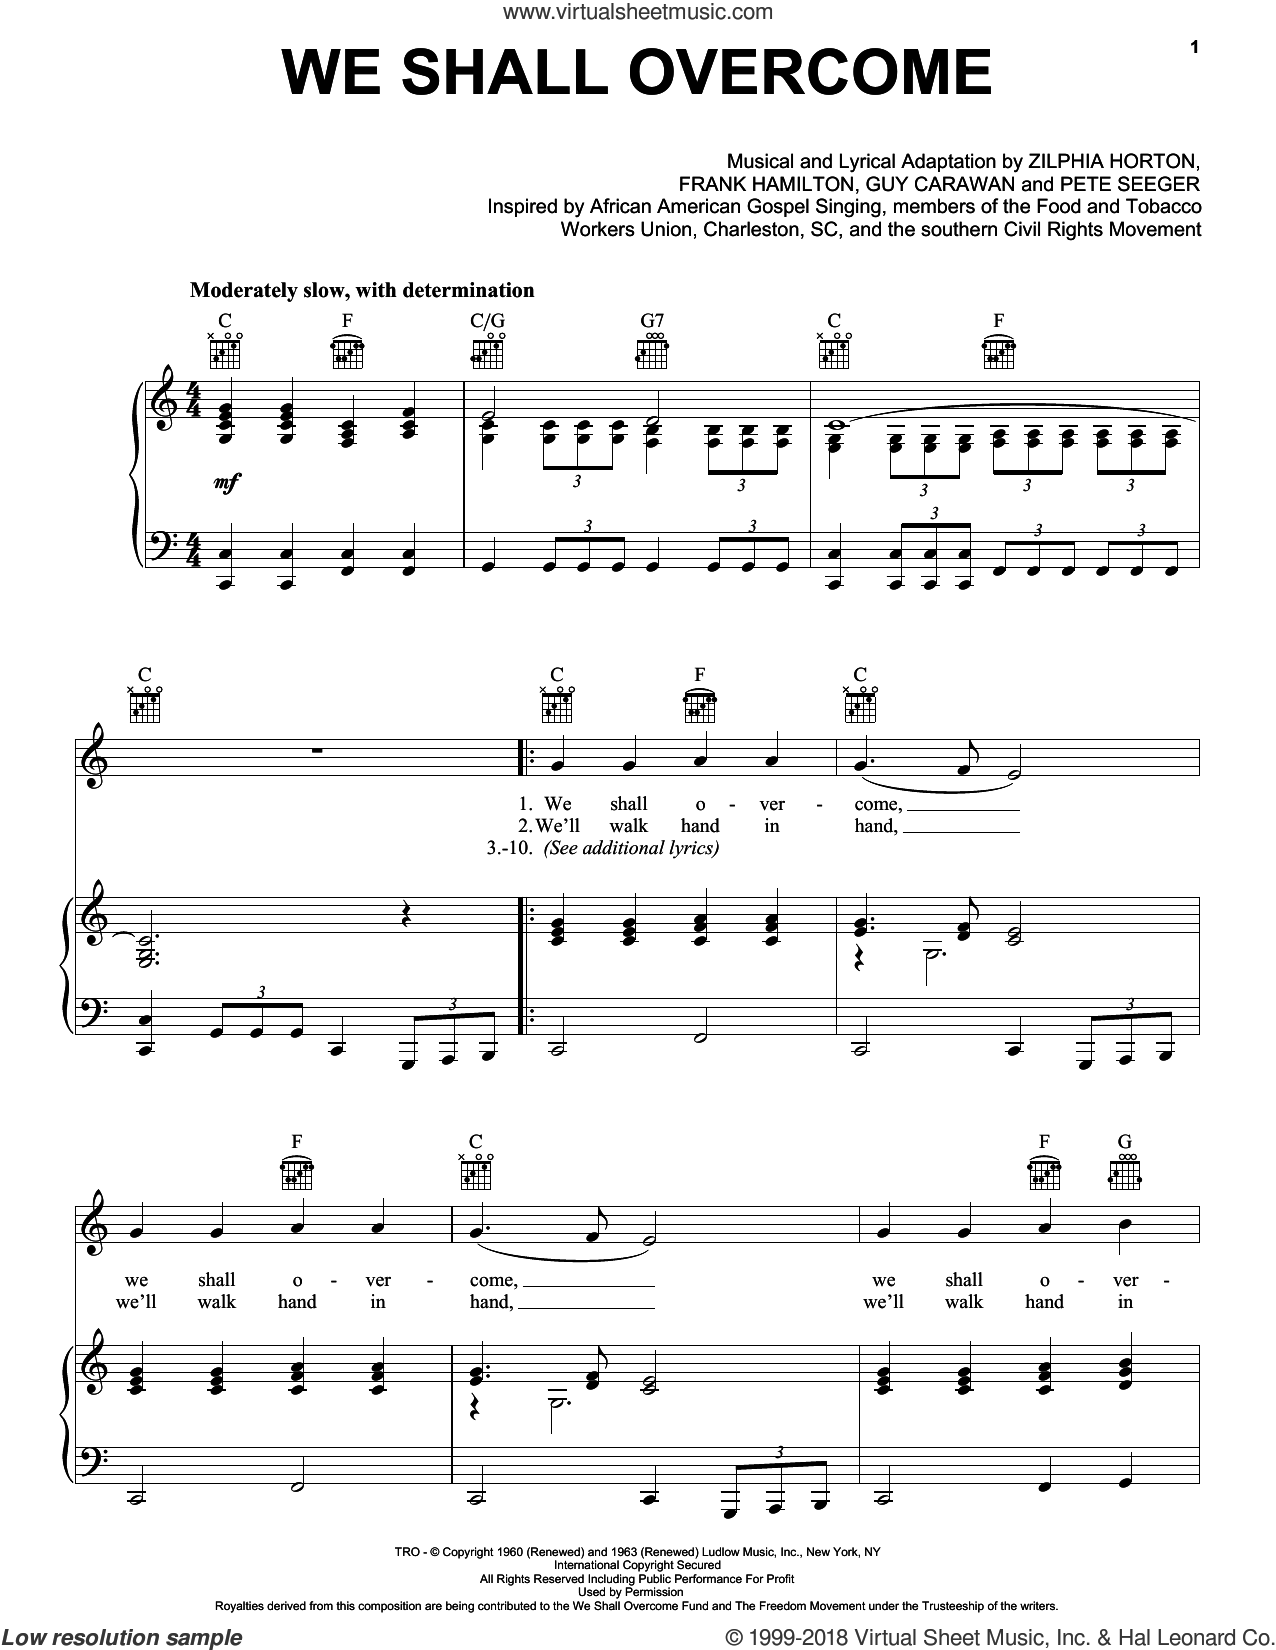 We Shall Overcome sheet music for voice, piano or guitar by Guy Carawan, Joan Baez, Frank Hamilton and Pete Seeger. Score Image Preview.